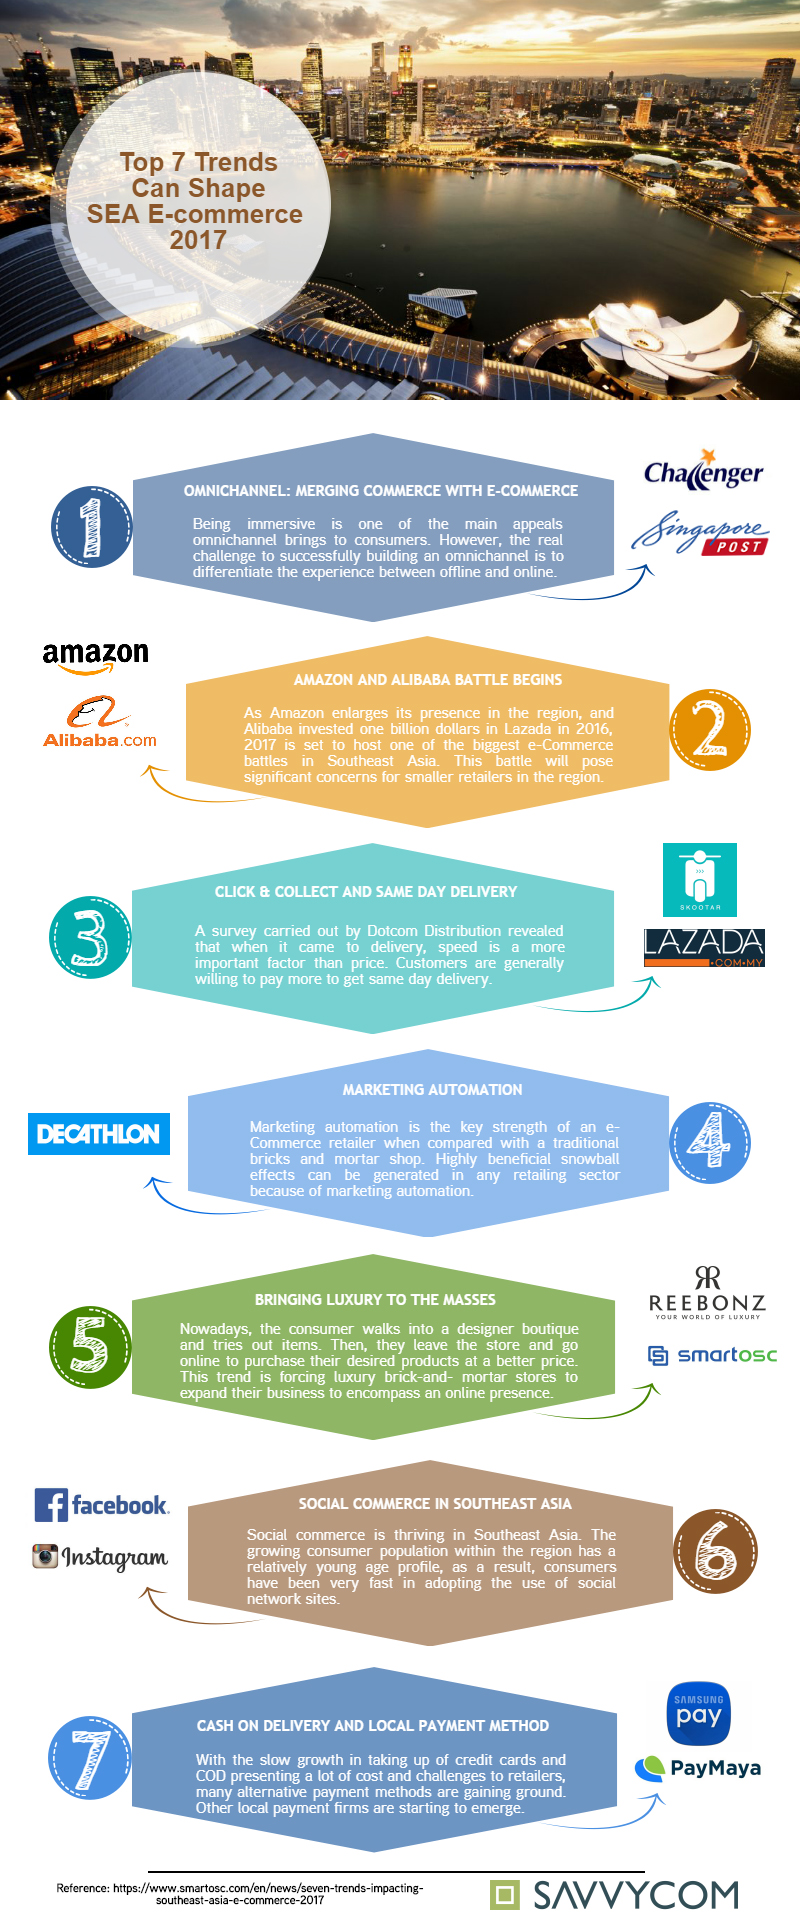 7trends-impacting-southest-asia-ecommerce-in-2017